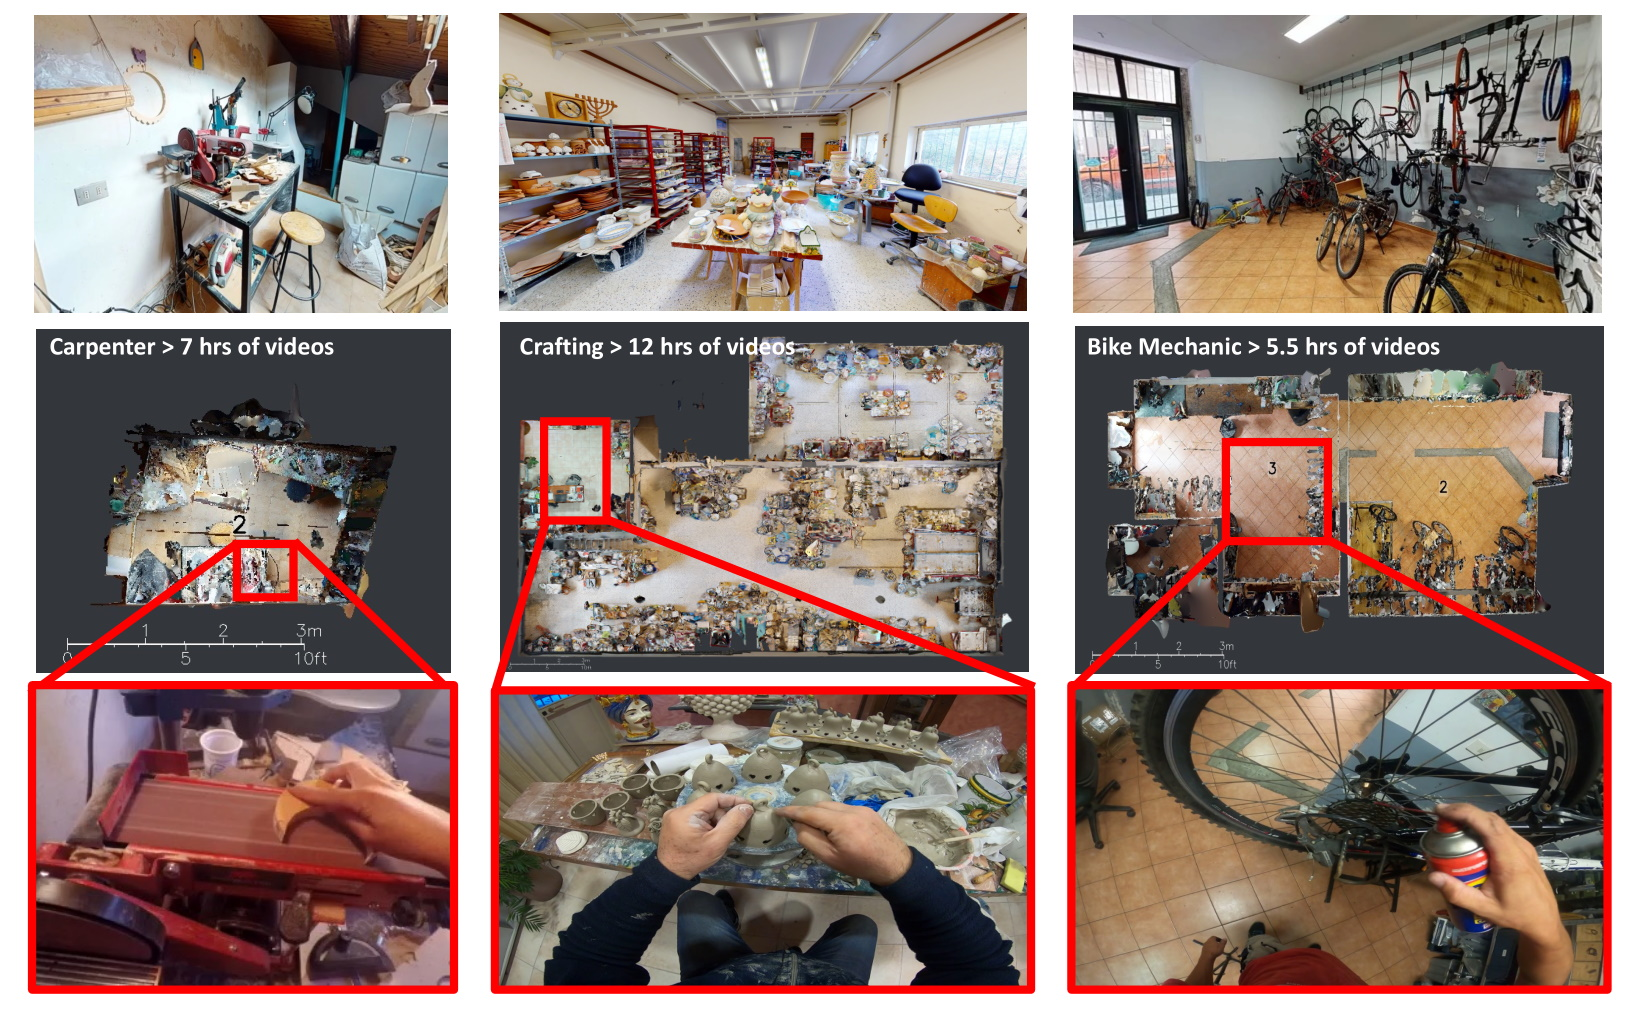 Examples from Facebook of first-person video and the environments where it was taken.